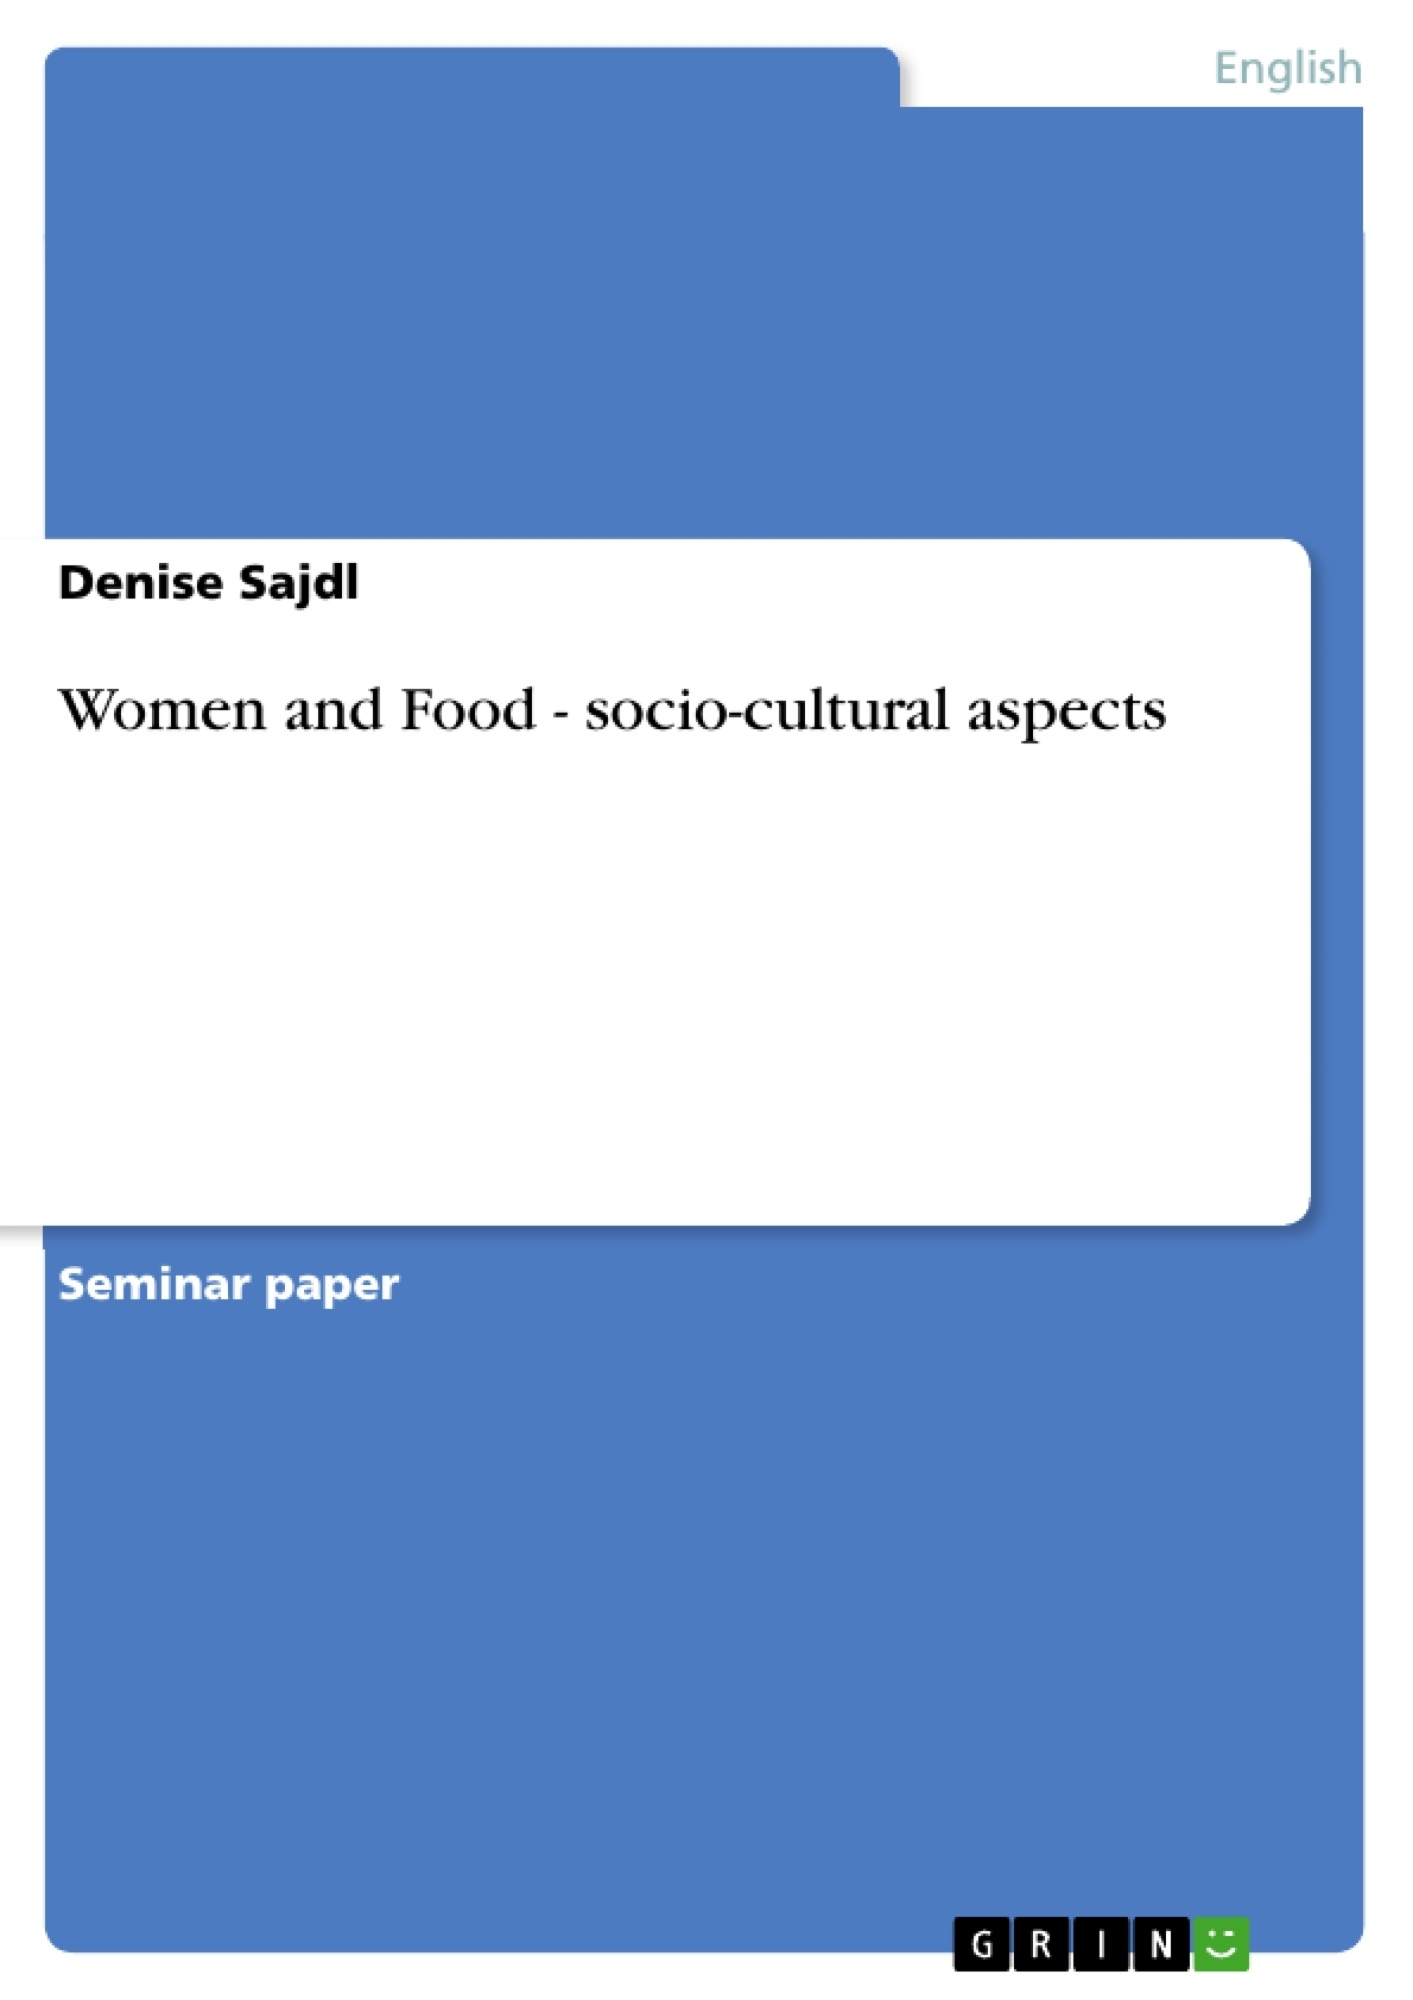 sociocultural essay An extended essay in social and project in linguistic anthropology should be warned that such research frequently presumes a background in both sociocultural.